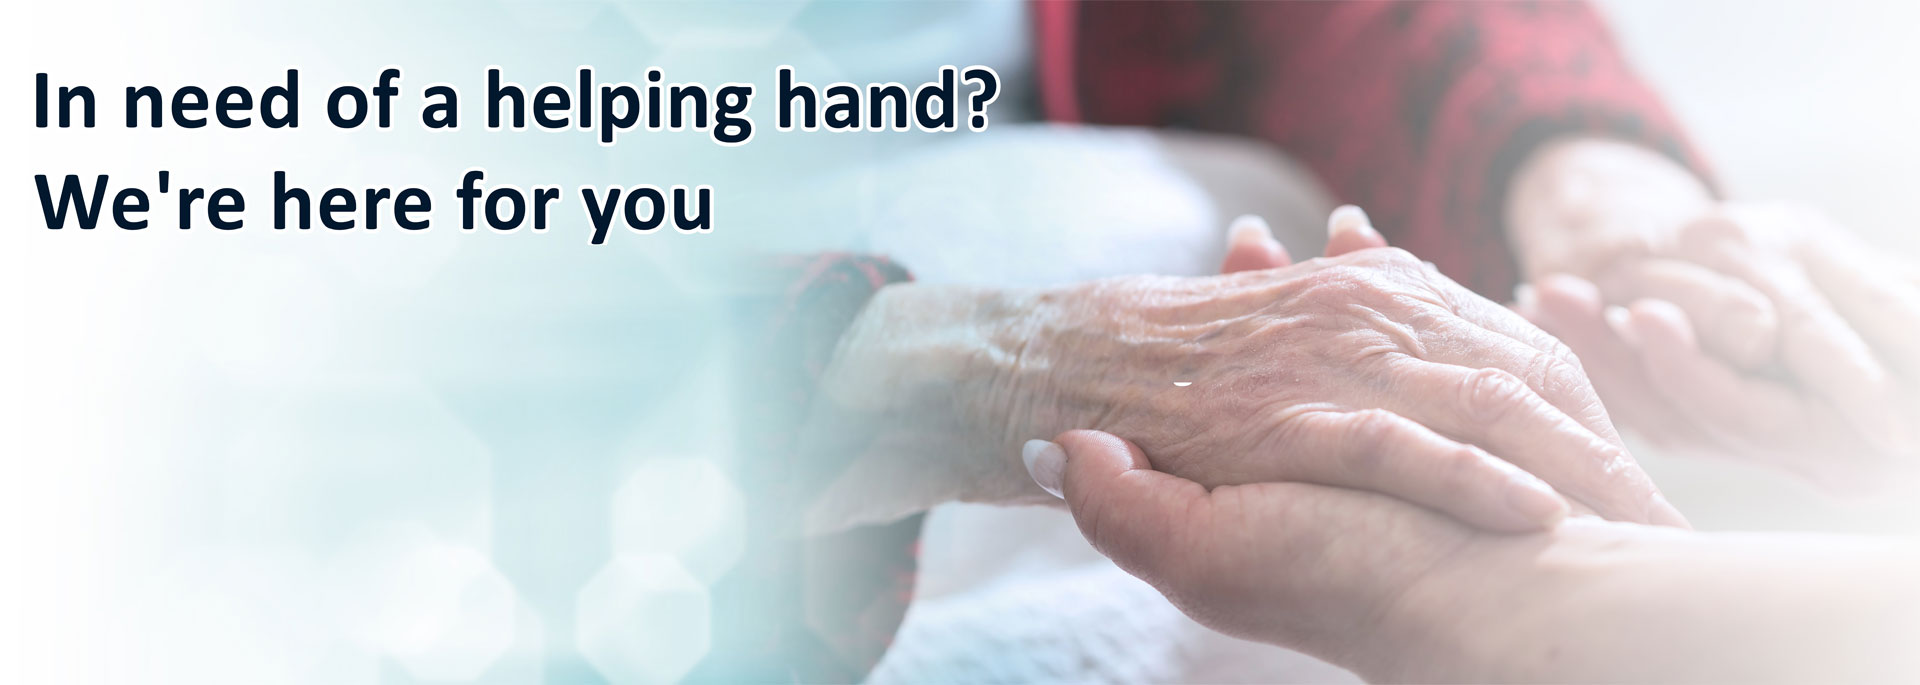 In need of a helping hand? We're here for you - banner